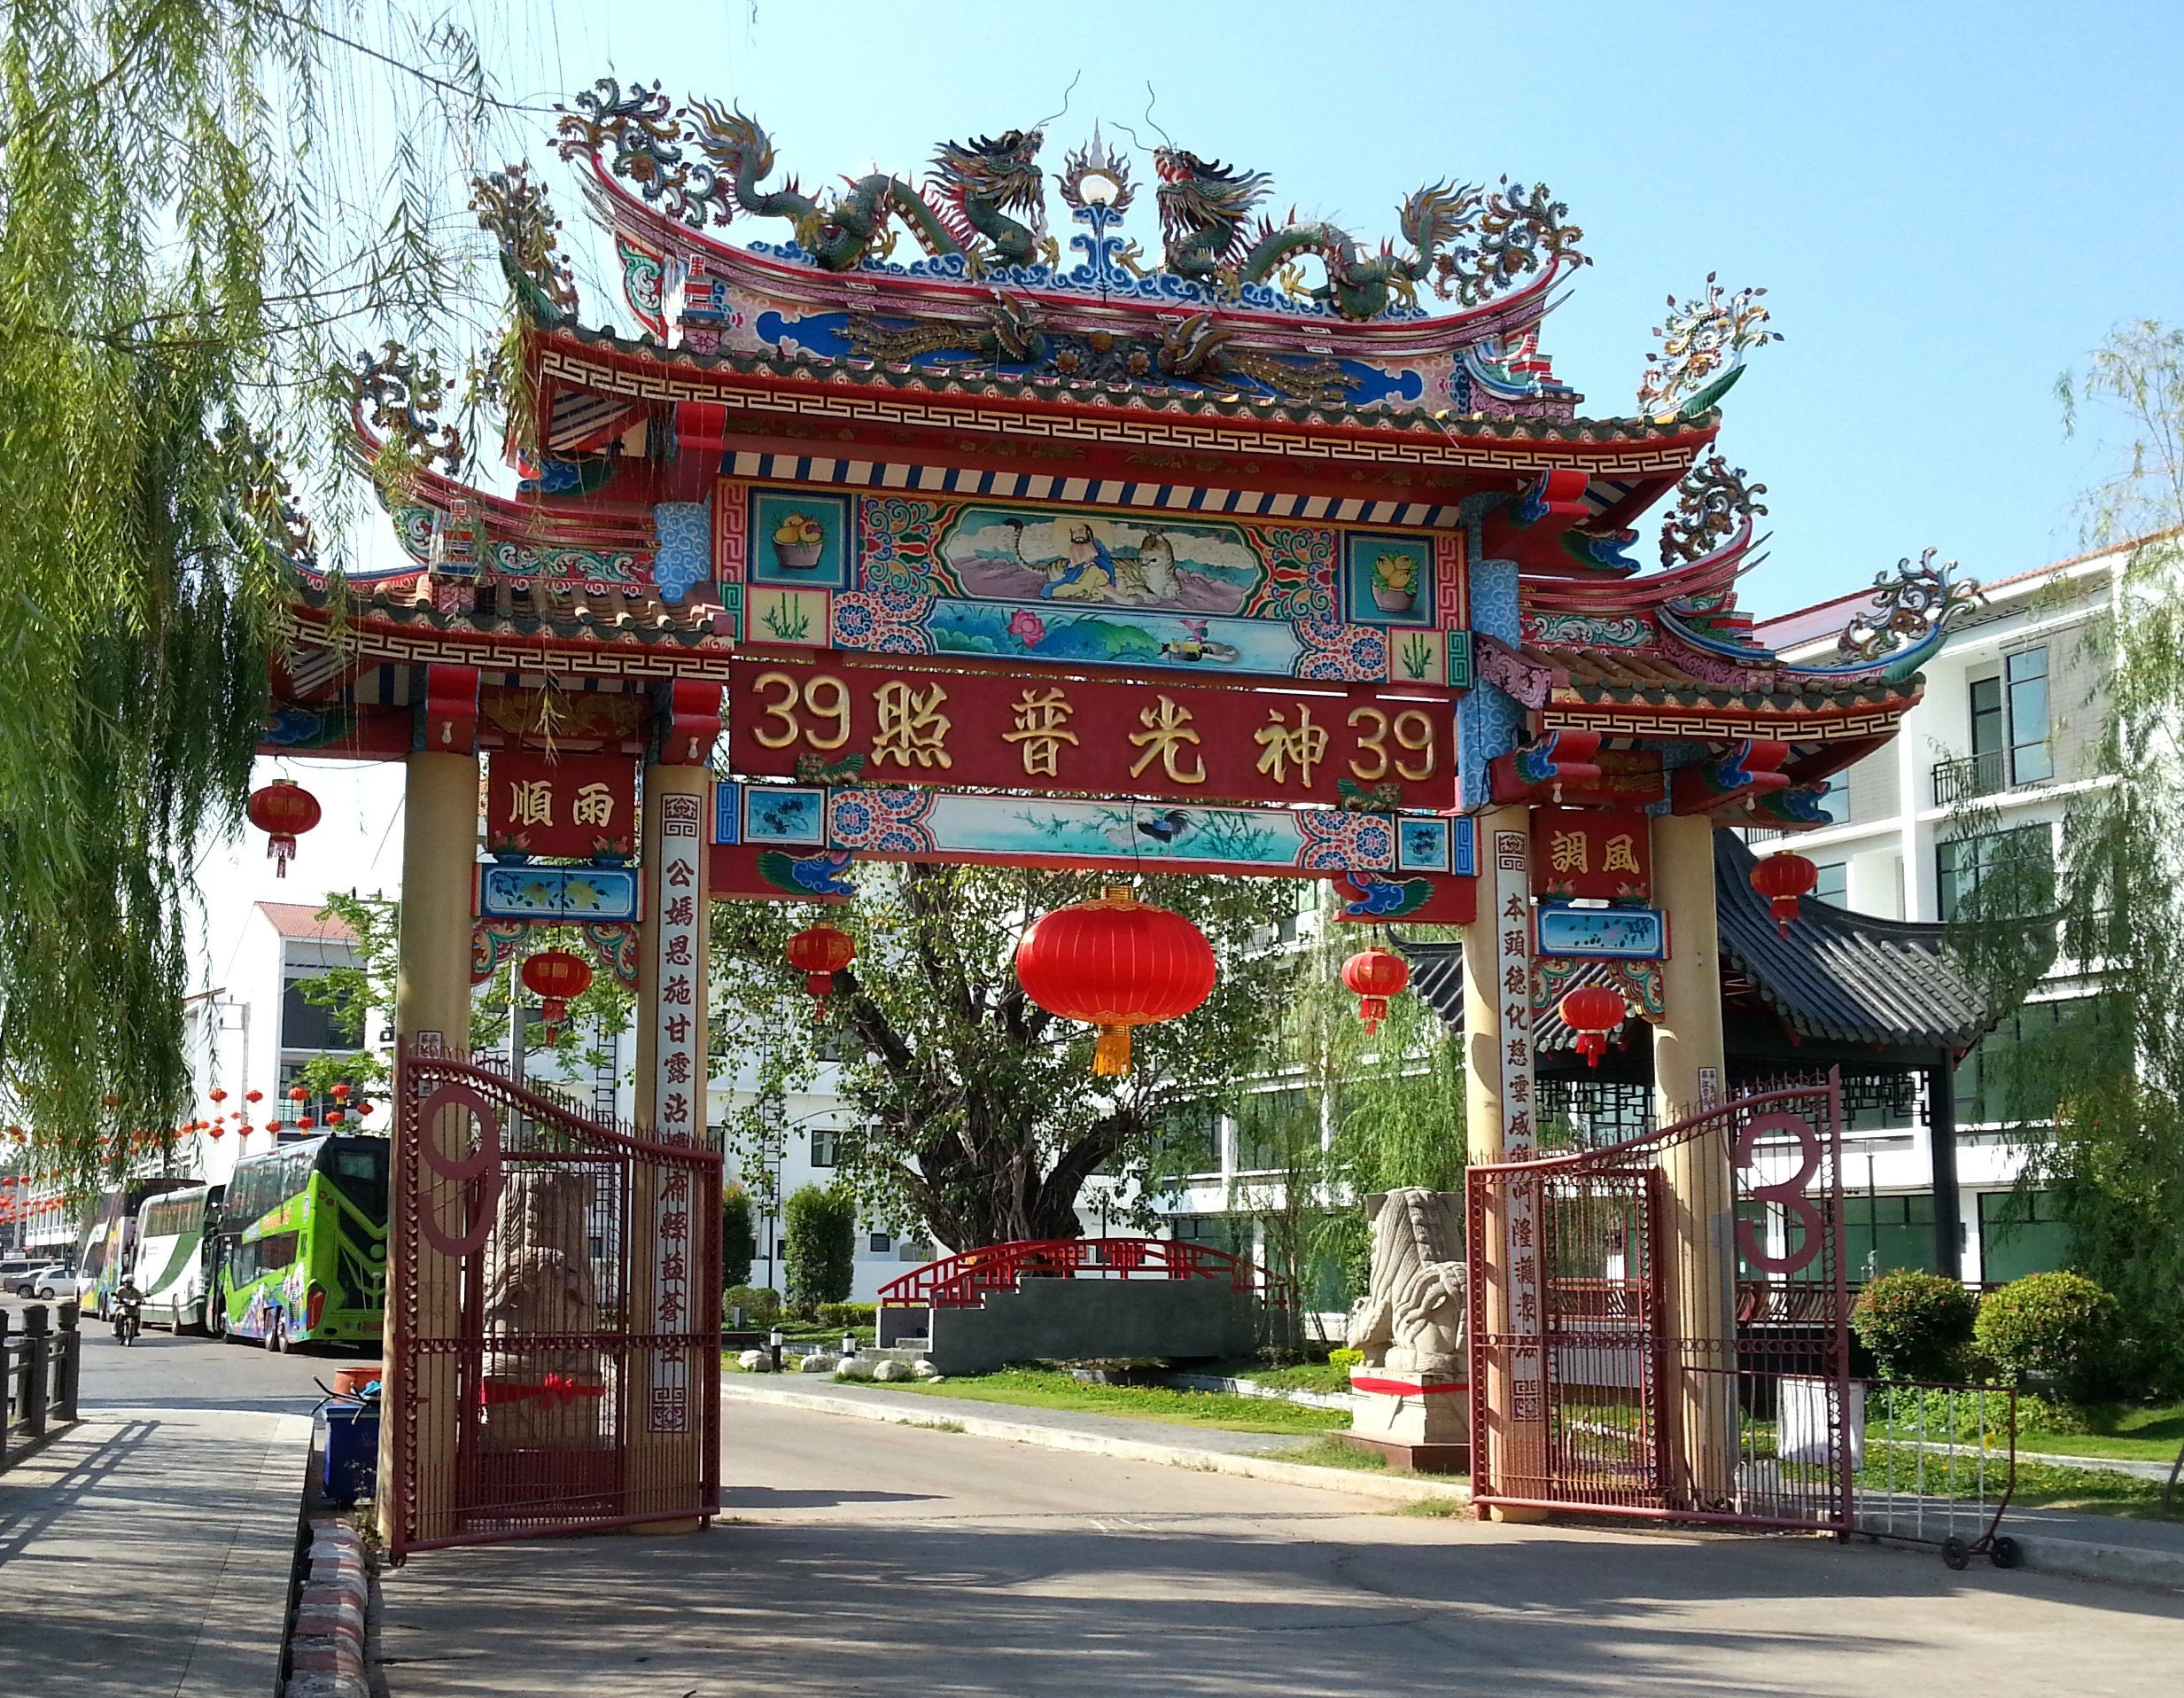 Gate to the Chao Pu-Ya Shrine